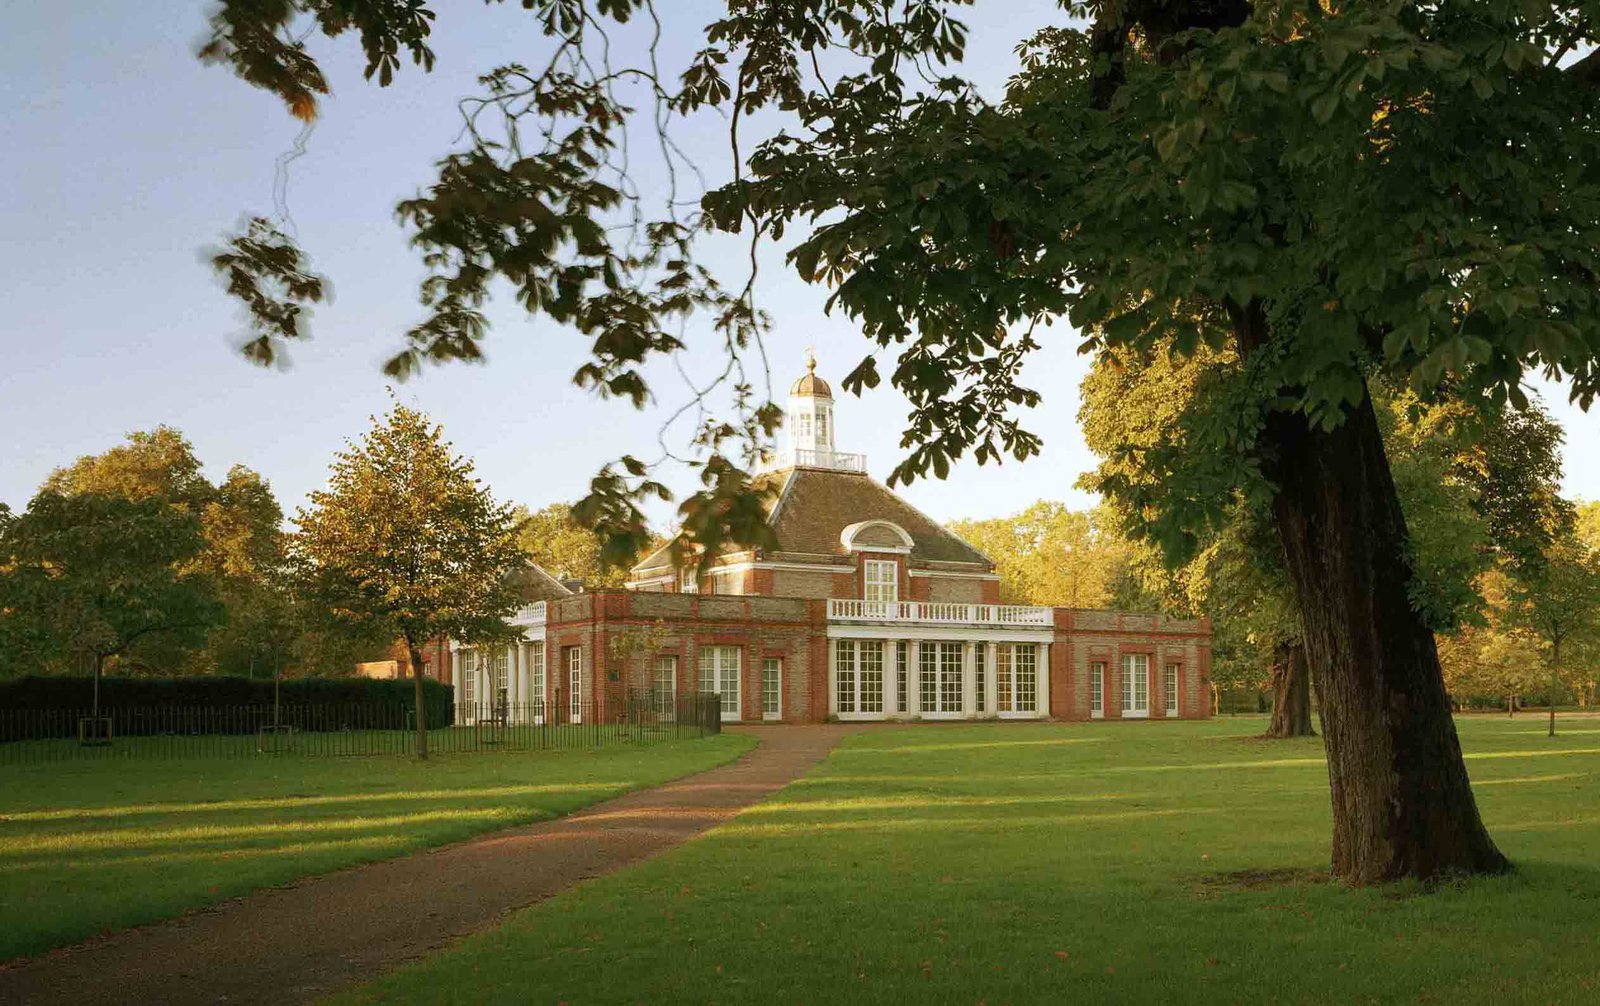 The Serpentine Gallery Photograph © 2007 John Offenbach